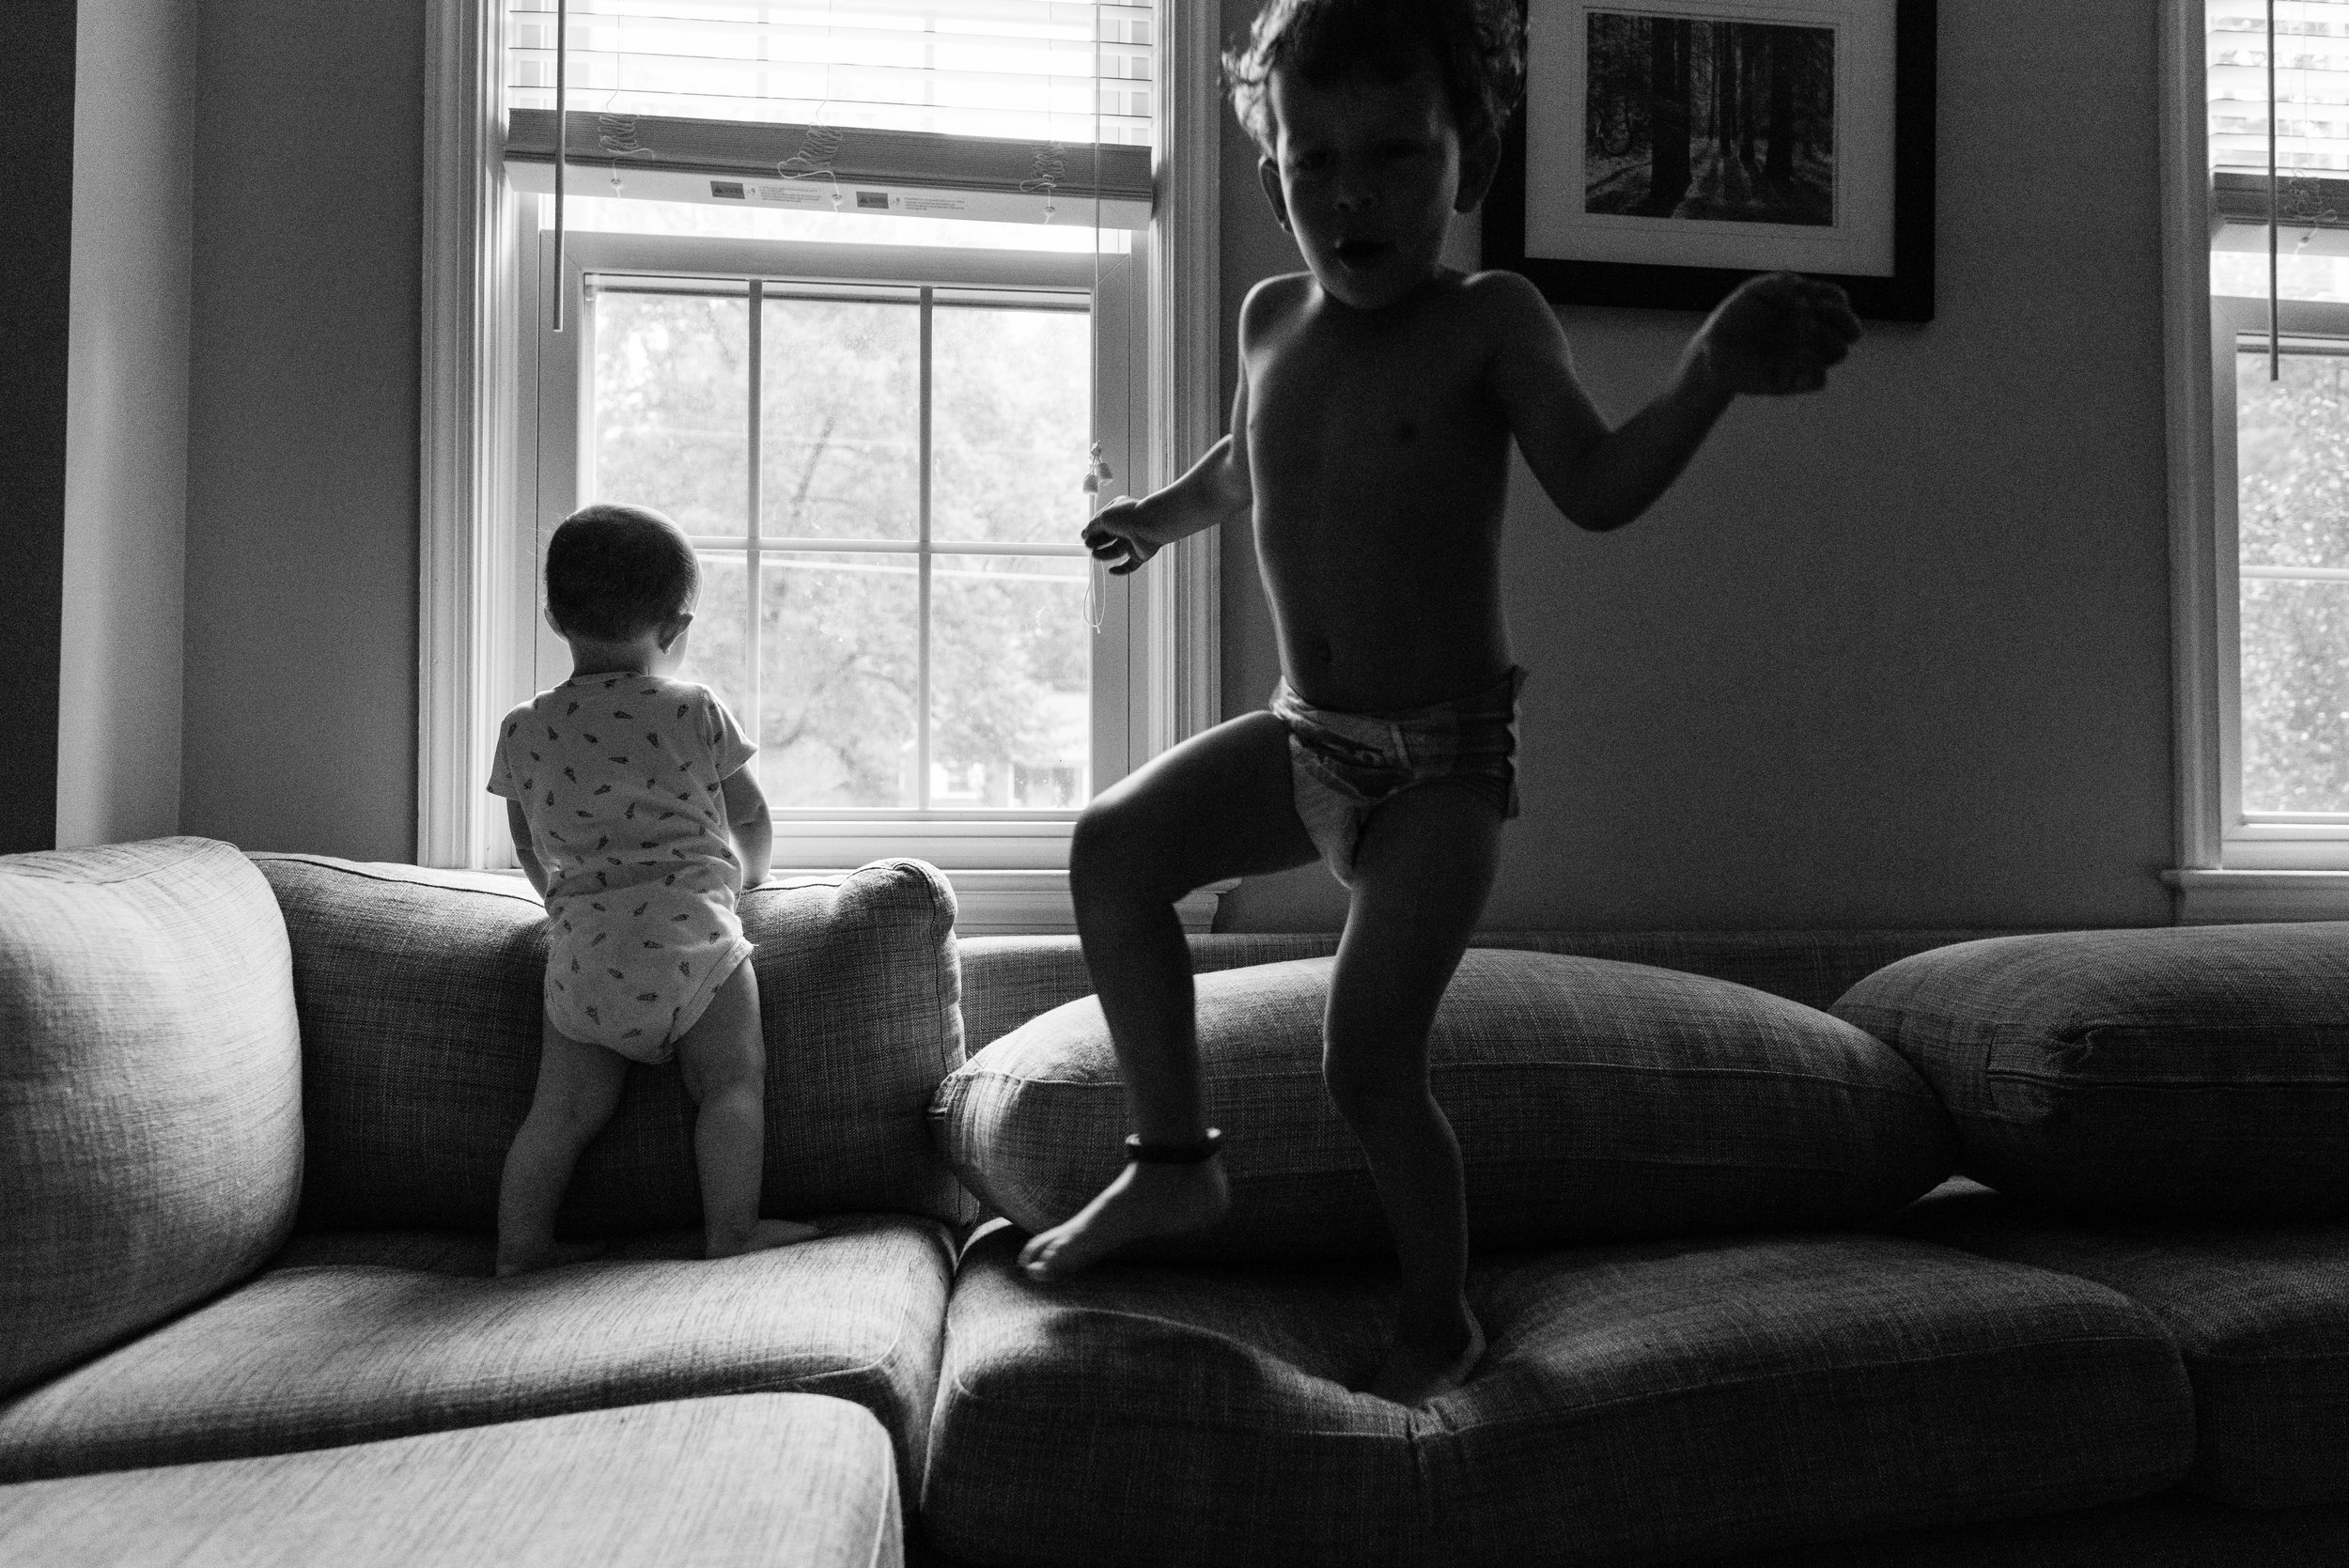 baby looking out window while brother jumps on couch by northern virginia family photographer nicole sanchez